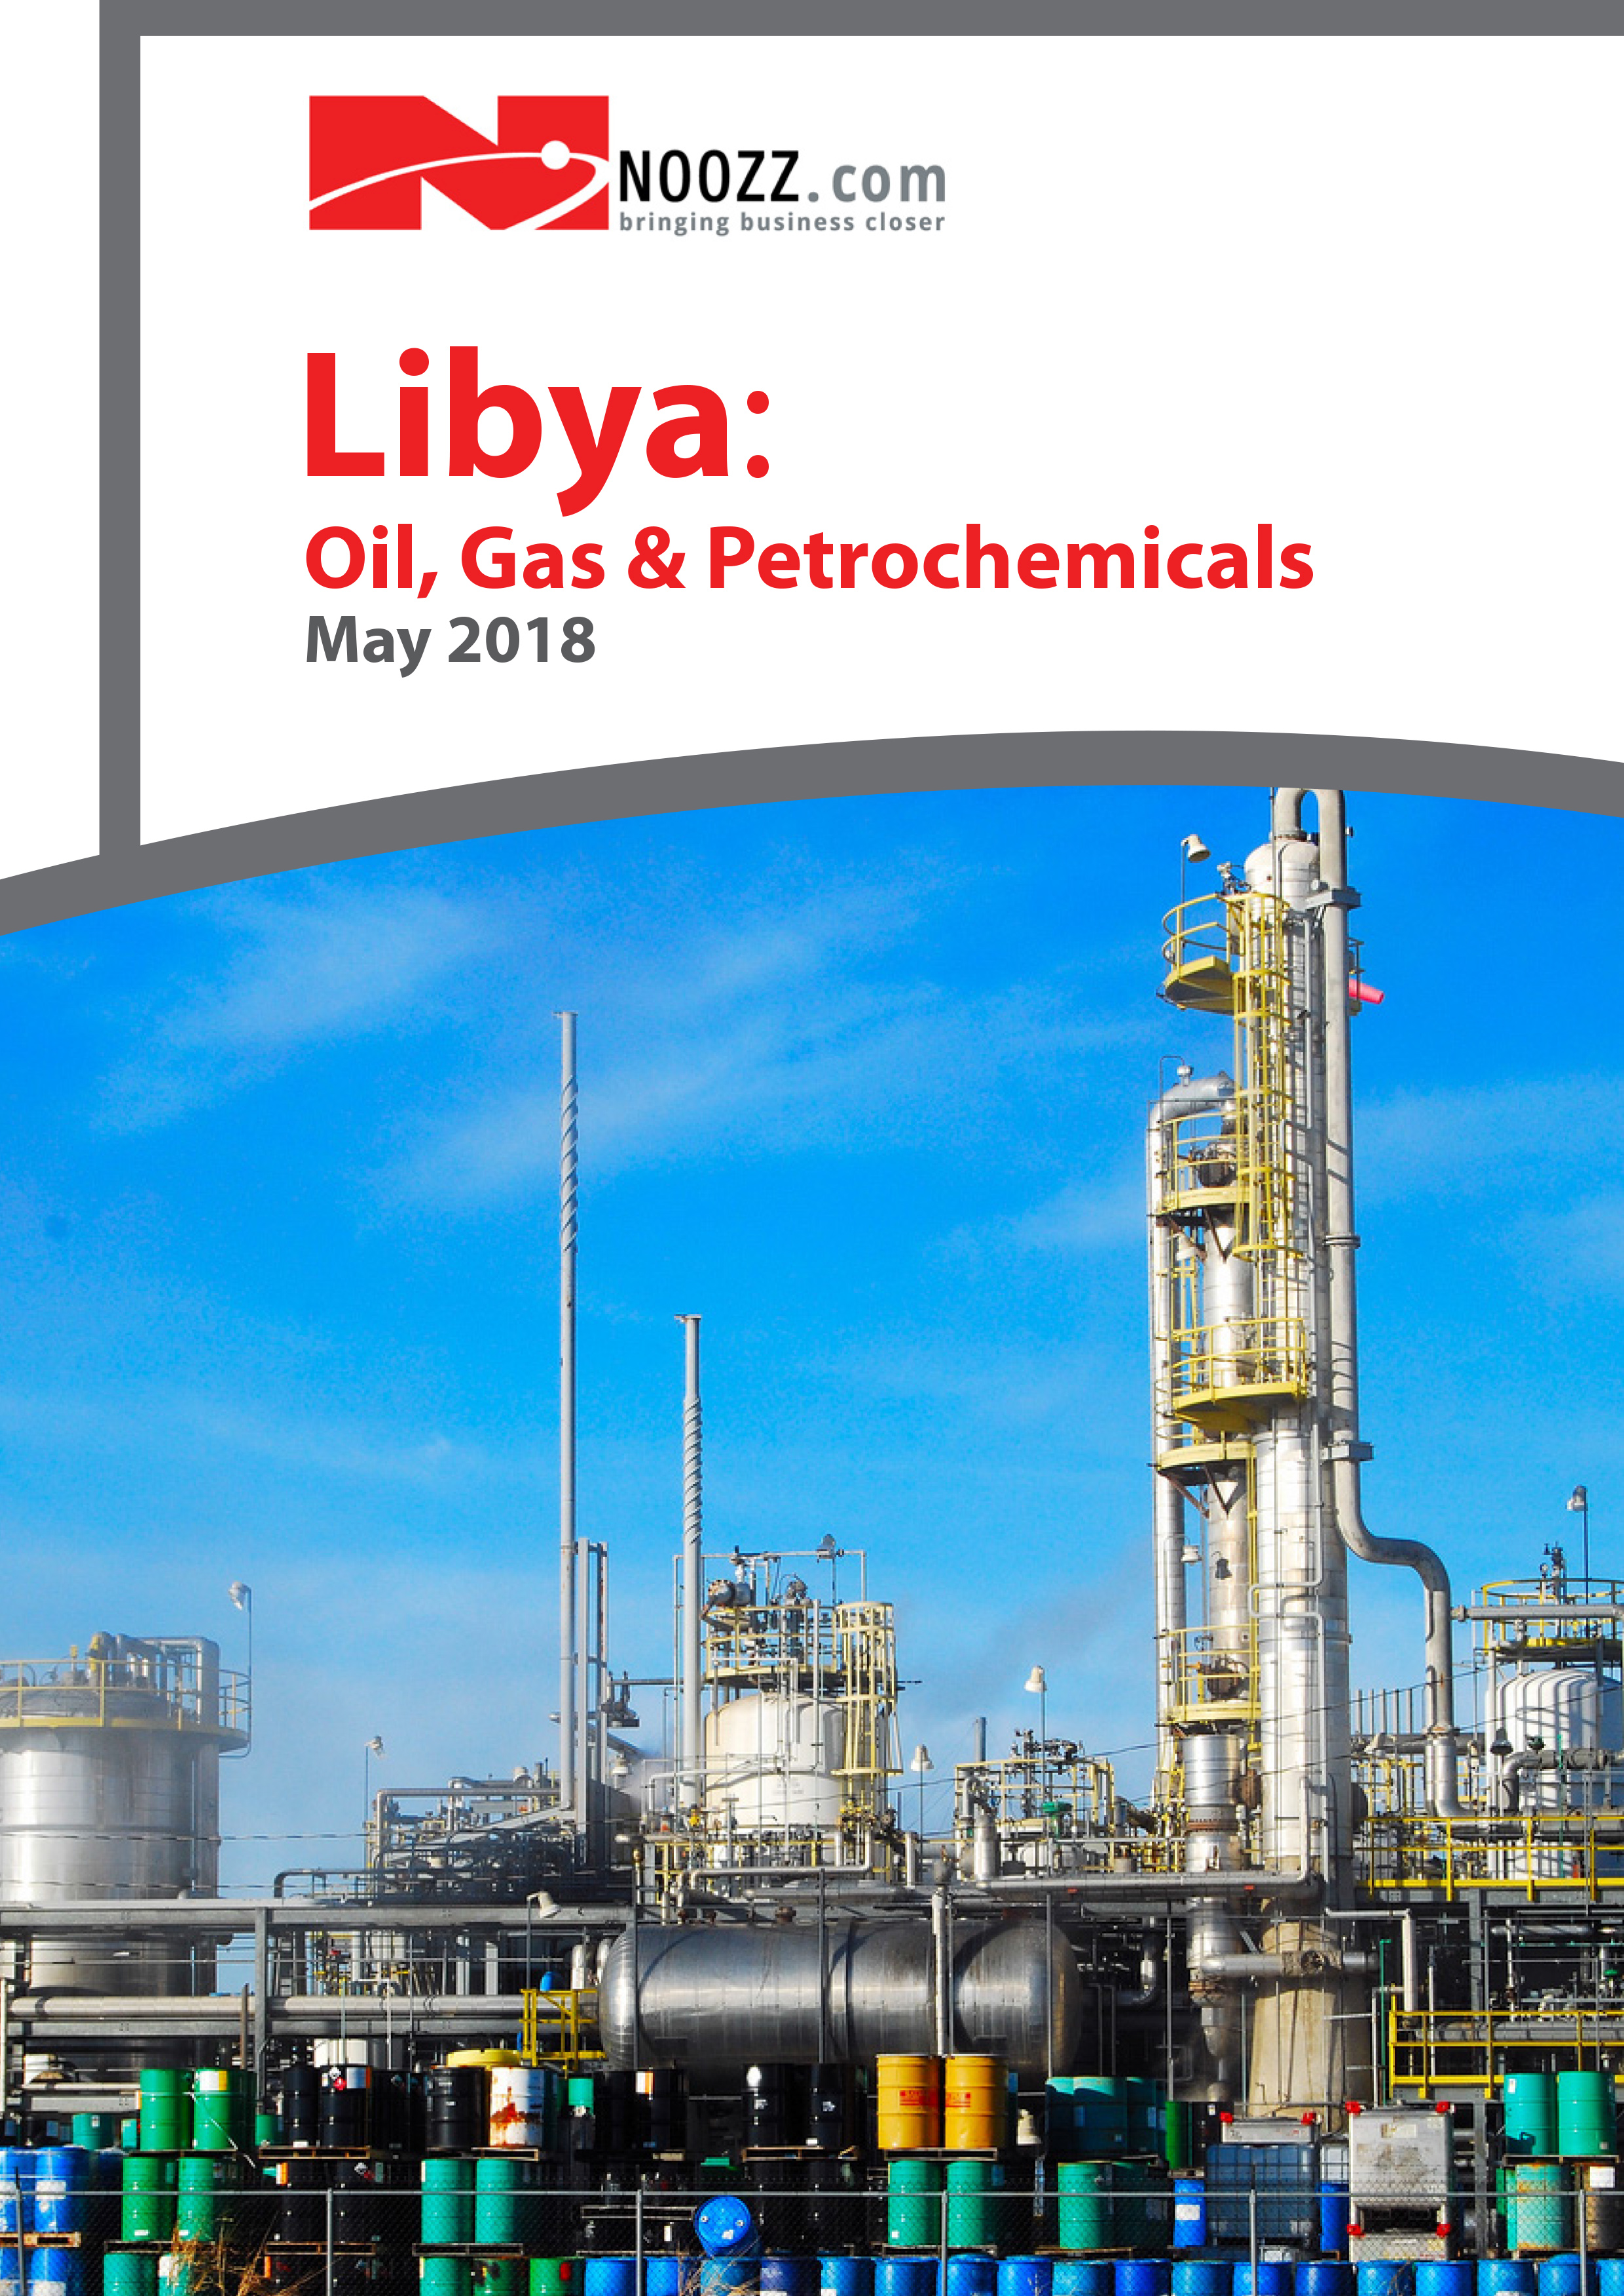 Libya Oil, Gas & Petrochemicals May 2018 | Noozz